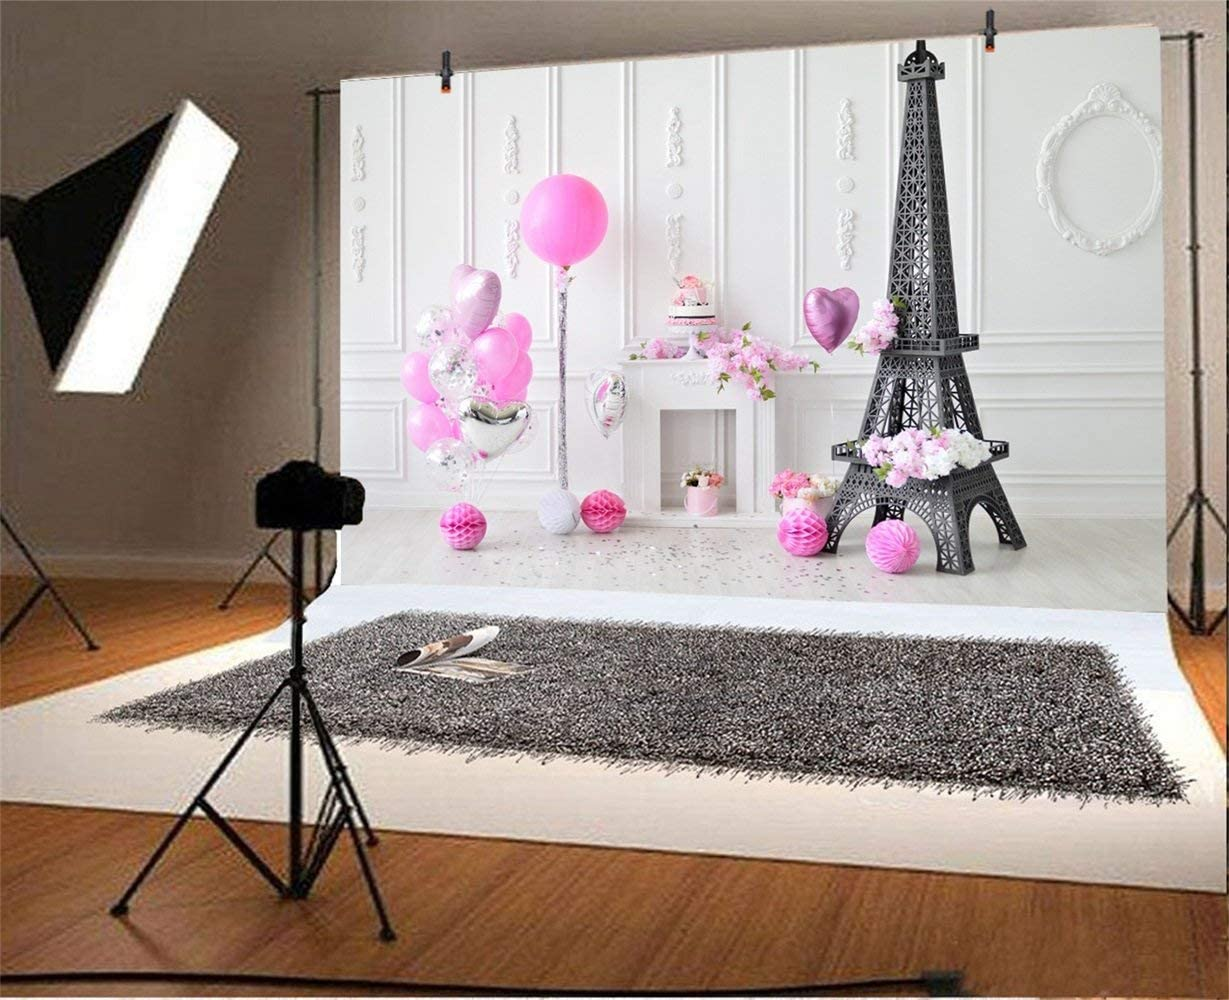 Sweet Baby Girl Birthday Party Backdrop 8x6.5ft Polyester Indoor Pink Sliver Balloon Bunches Eiffel Tower Purple Paper Poms Fireplace Photography Background Kids Baby Shoot Party Banner Cake Smash